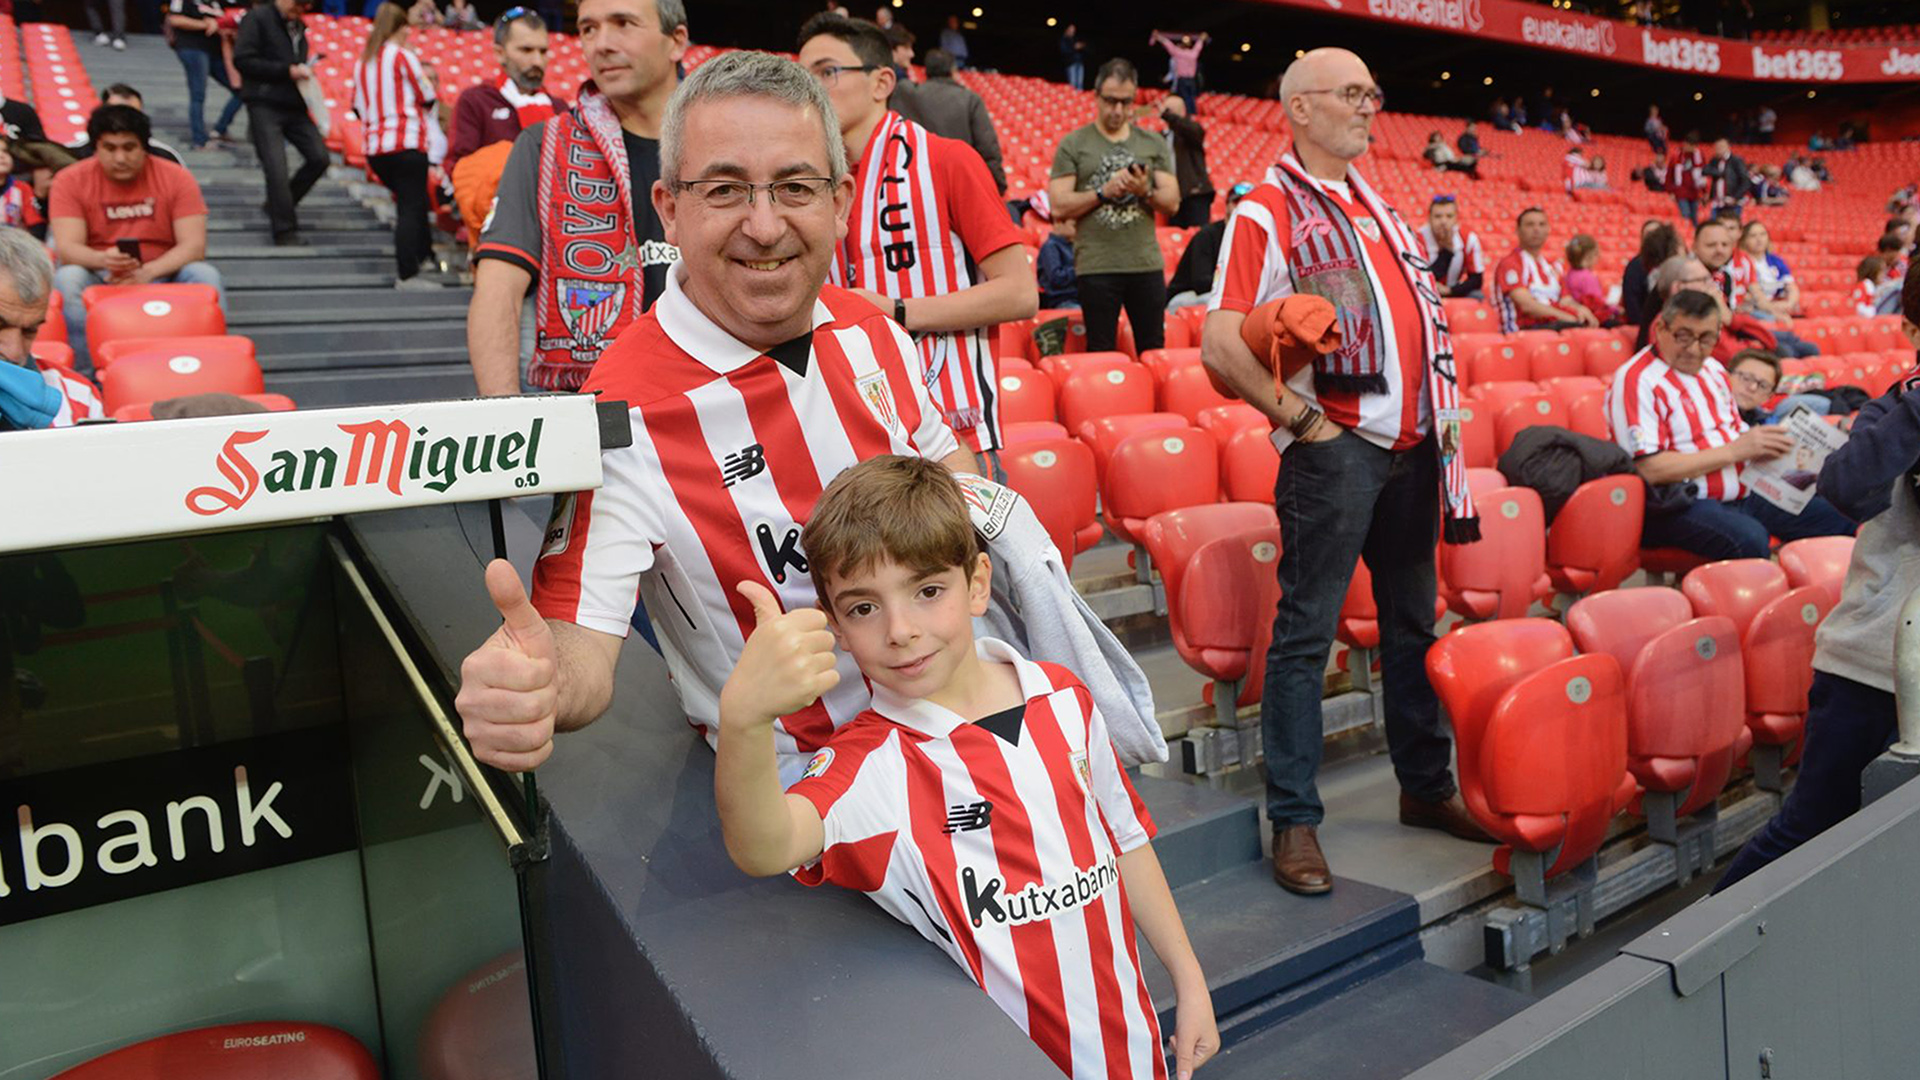 Tickets for minors accompanied by members for the Athletic Club – Real Sociedad match